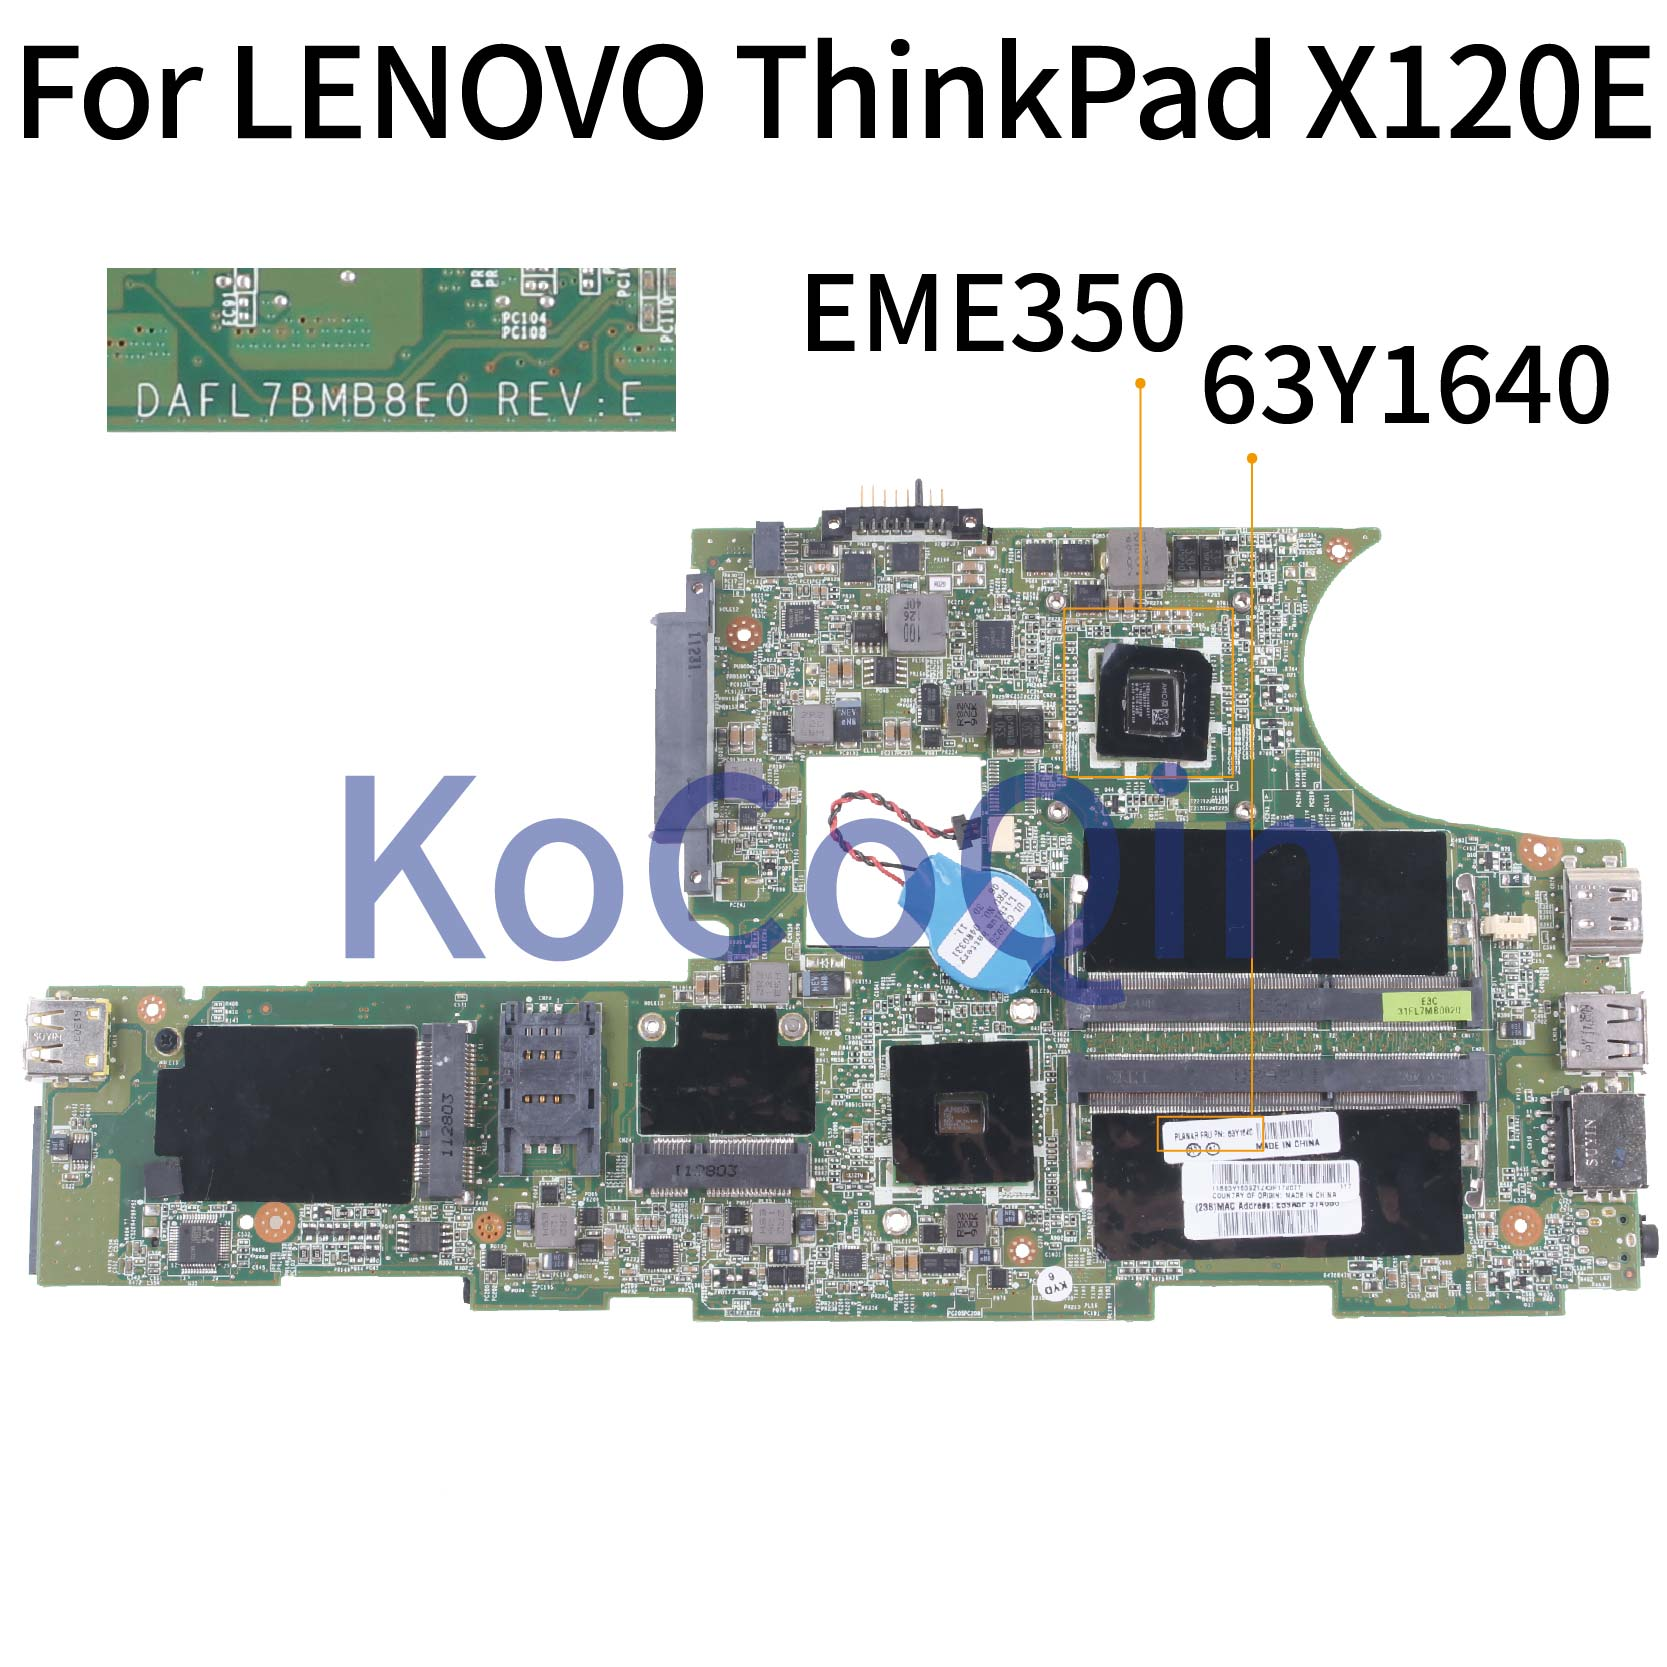 KoCoQin Laptop motherboard For LENOVO ThinkPad X120E Mainboard 63Y1640 04W0367 EME350|Laptop Motherboard| |  - title=